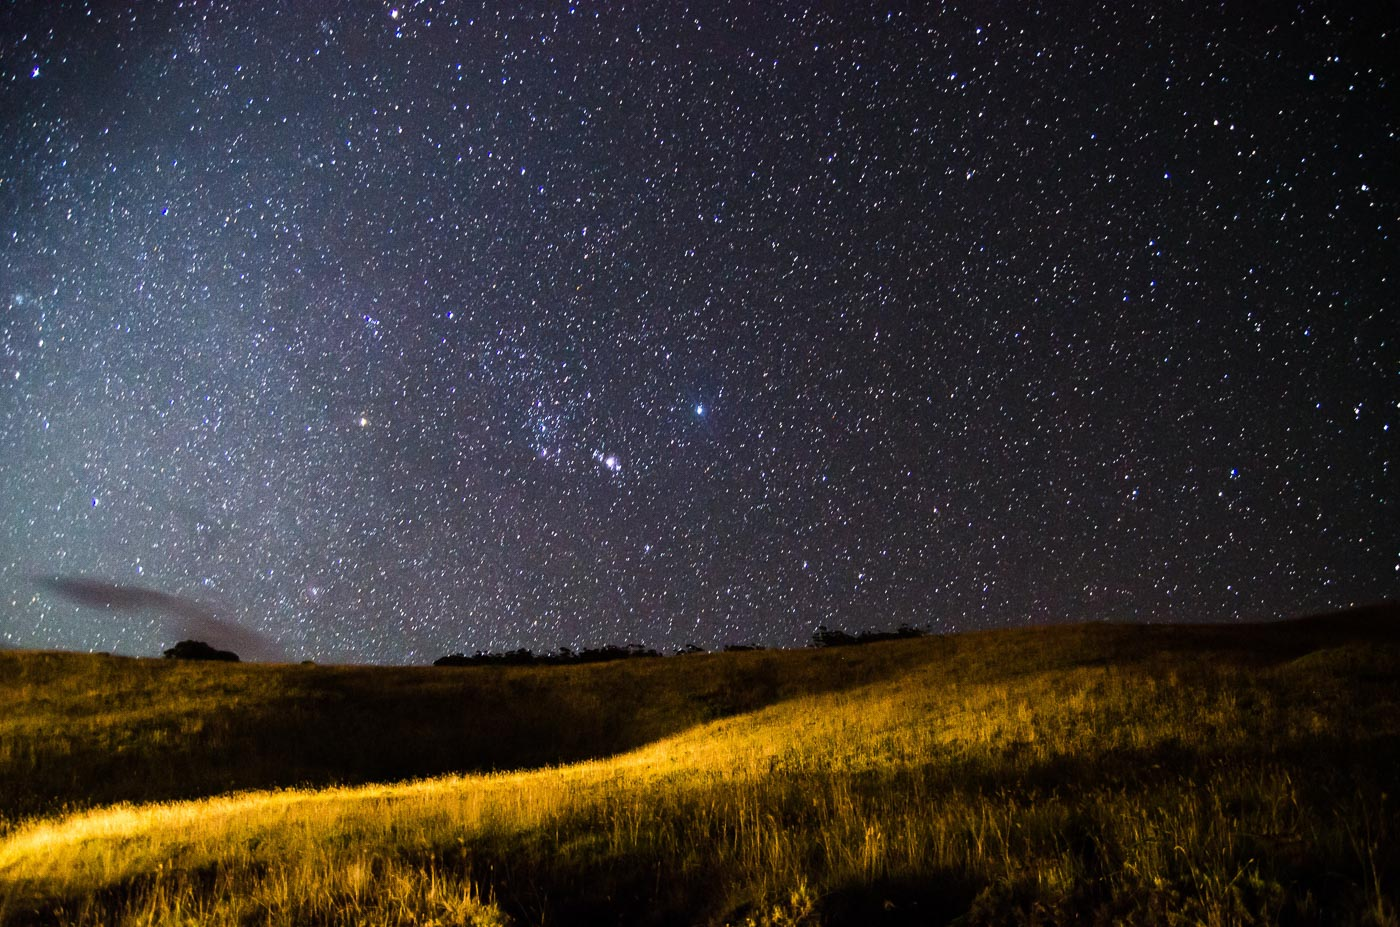 15 Places to Watch the Perseid Meteor Shower in Ontario